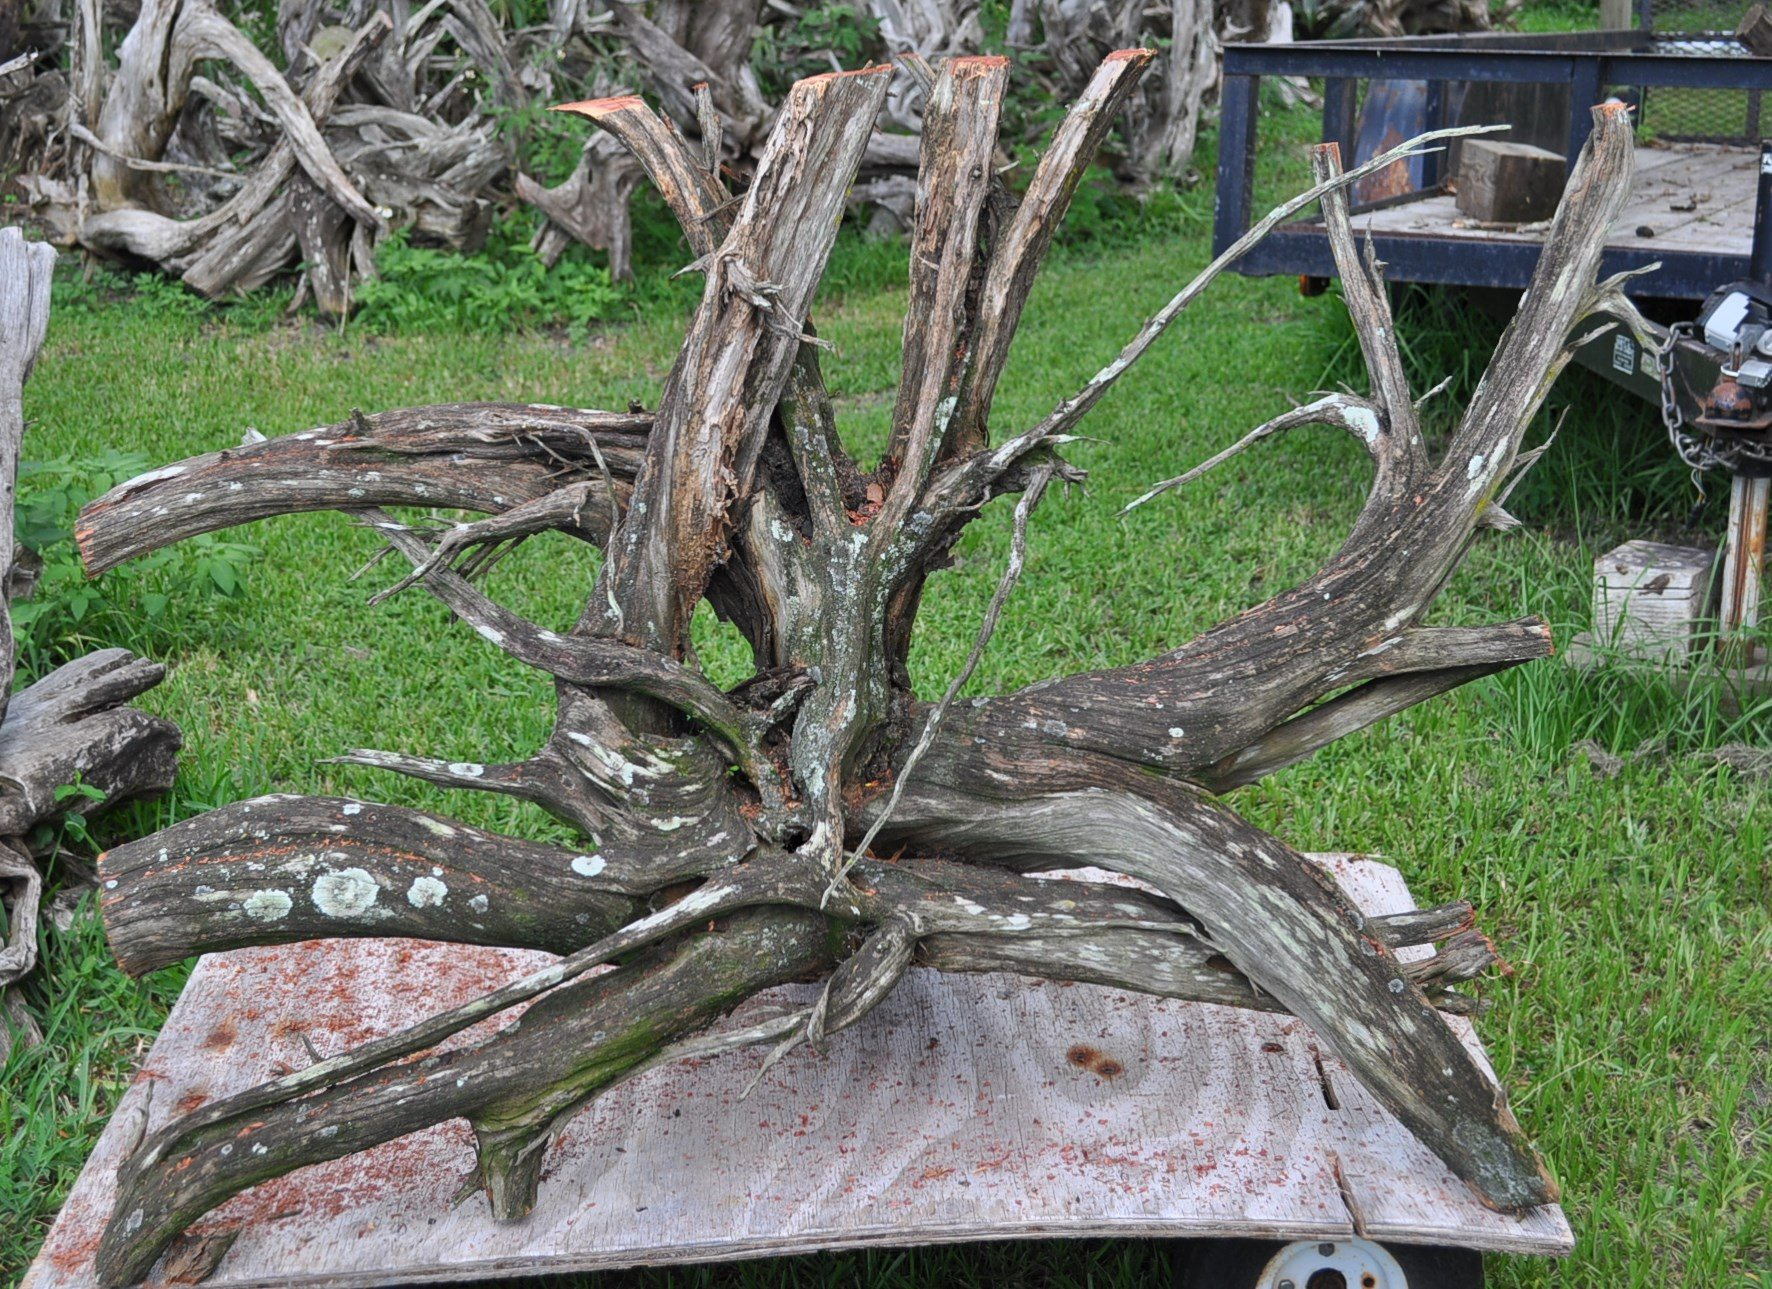 A driftwood dining table for Sal & Reggie